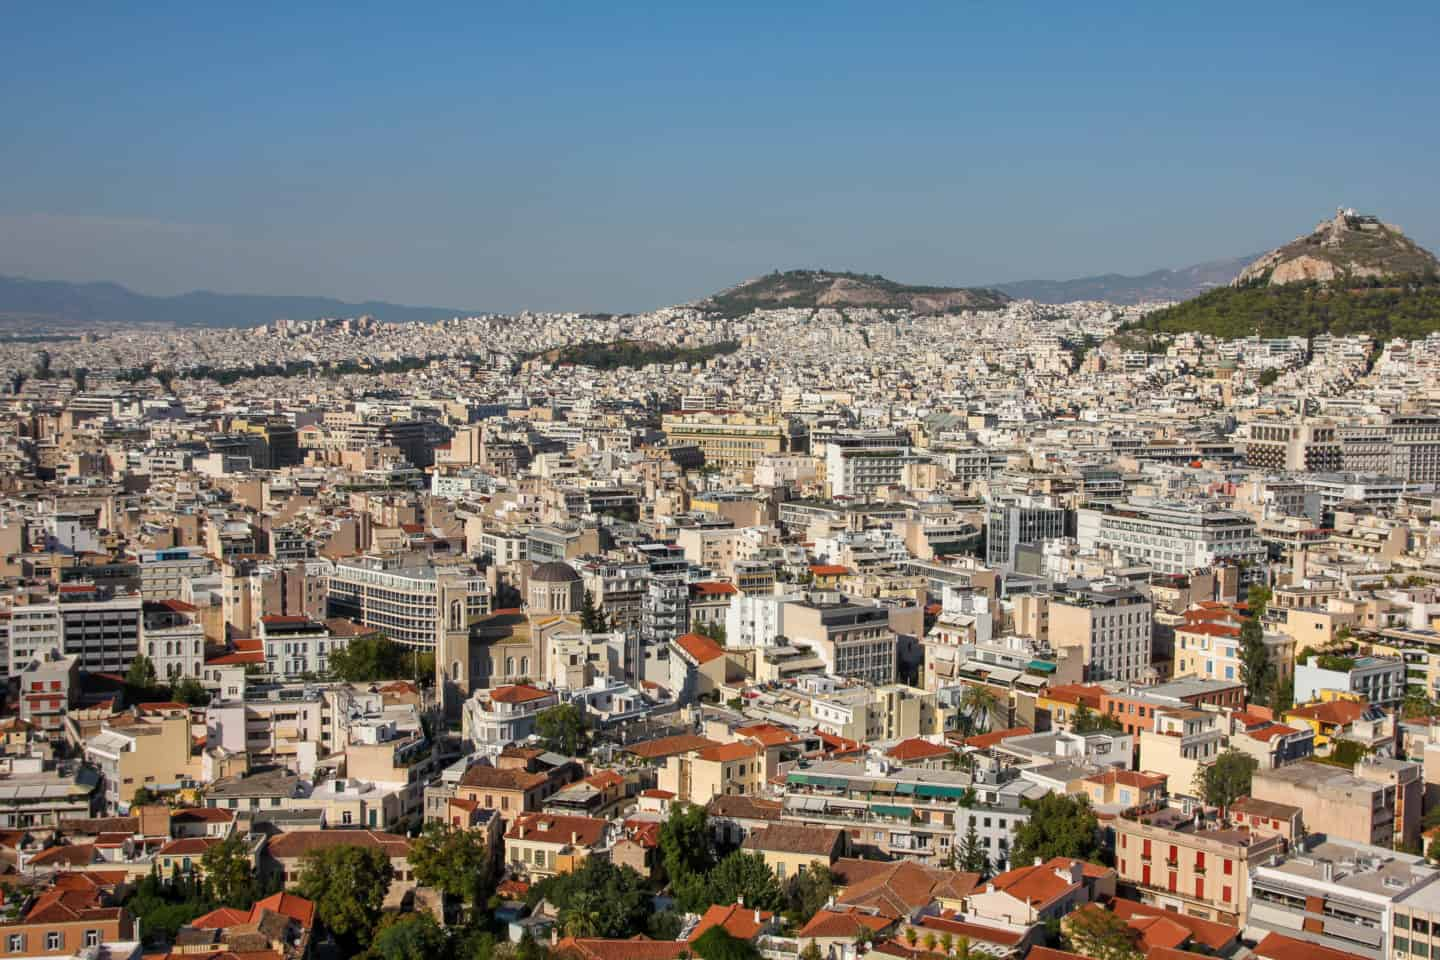 Checking out the view of Athens is a must do while visiting the Acropolis in Athens